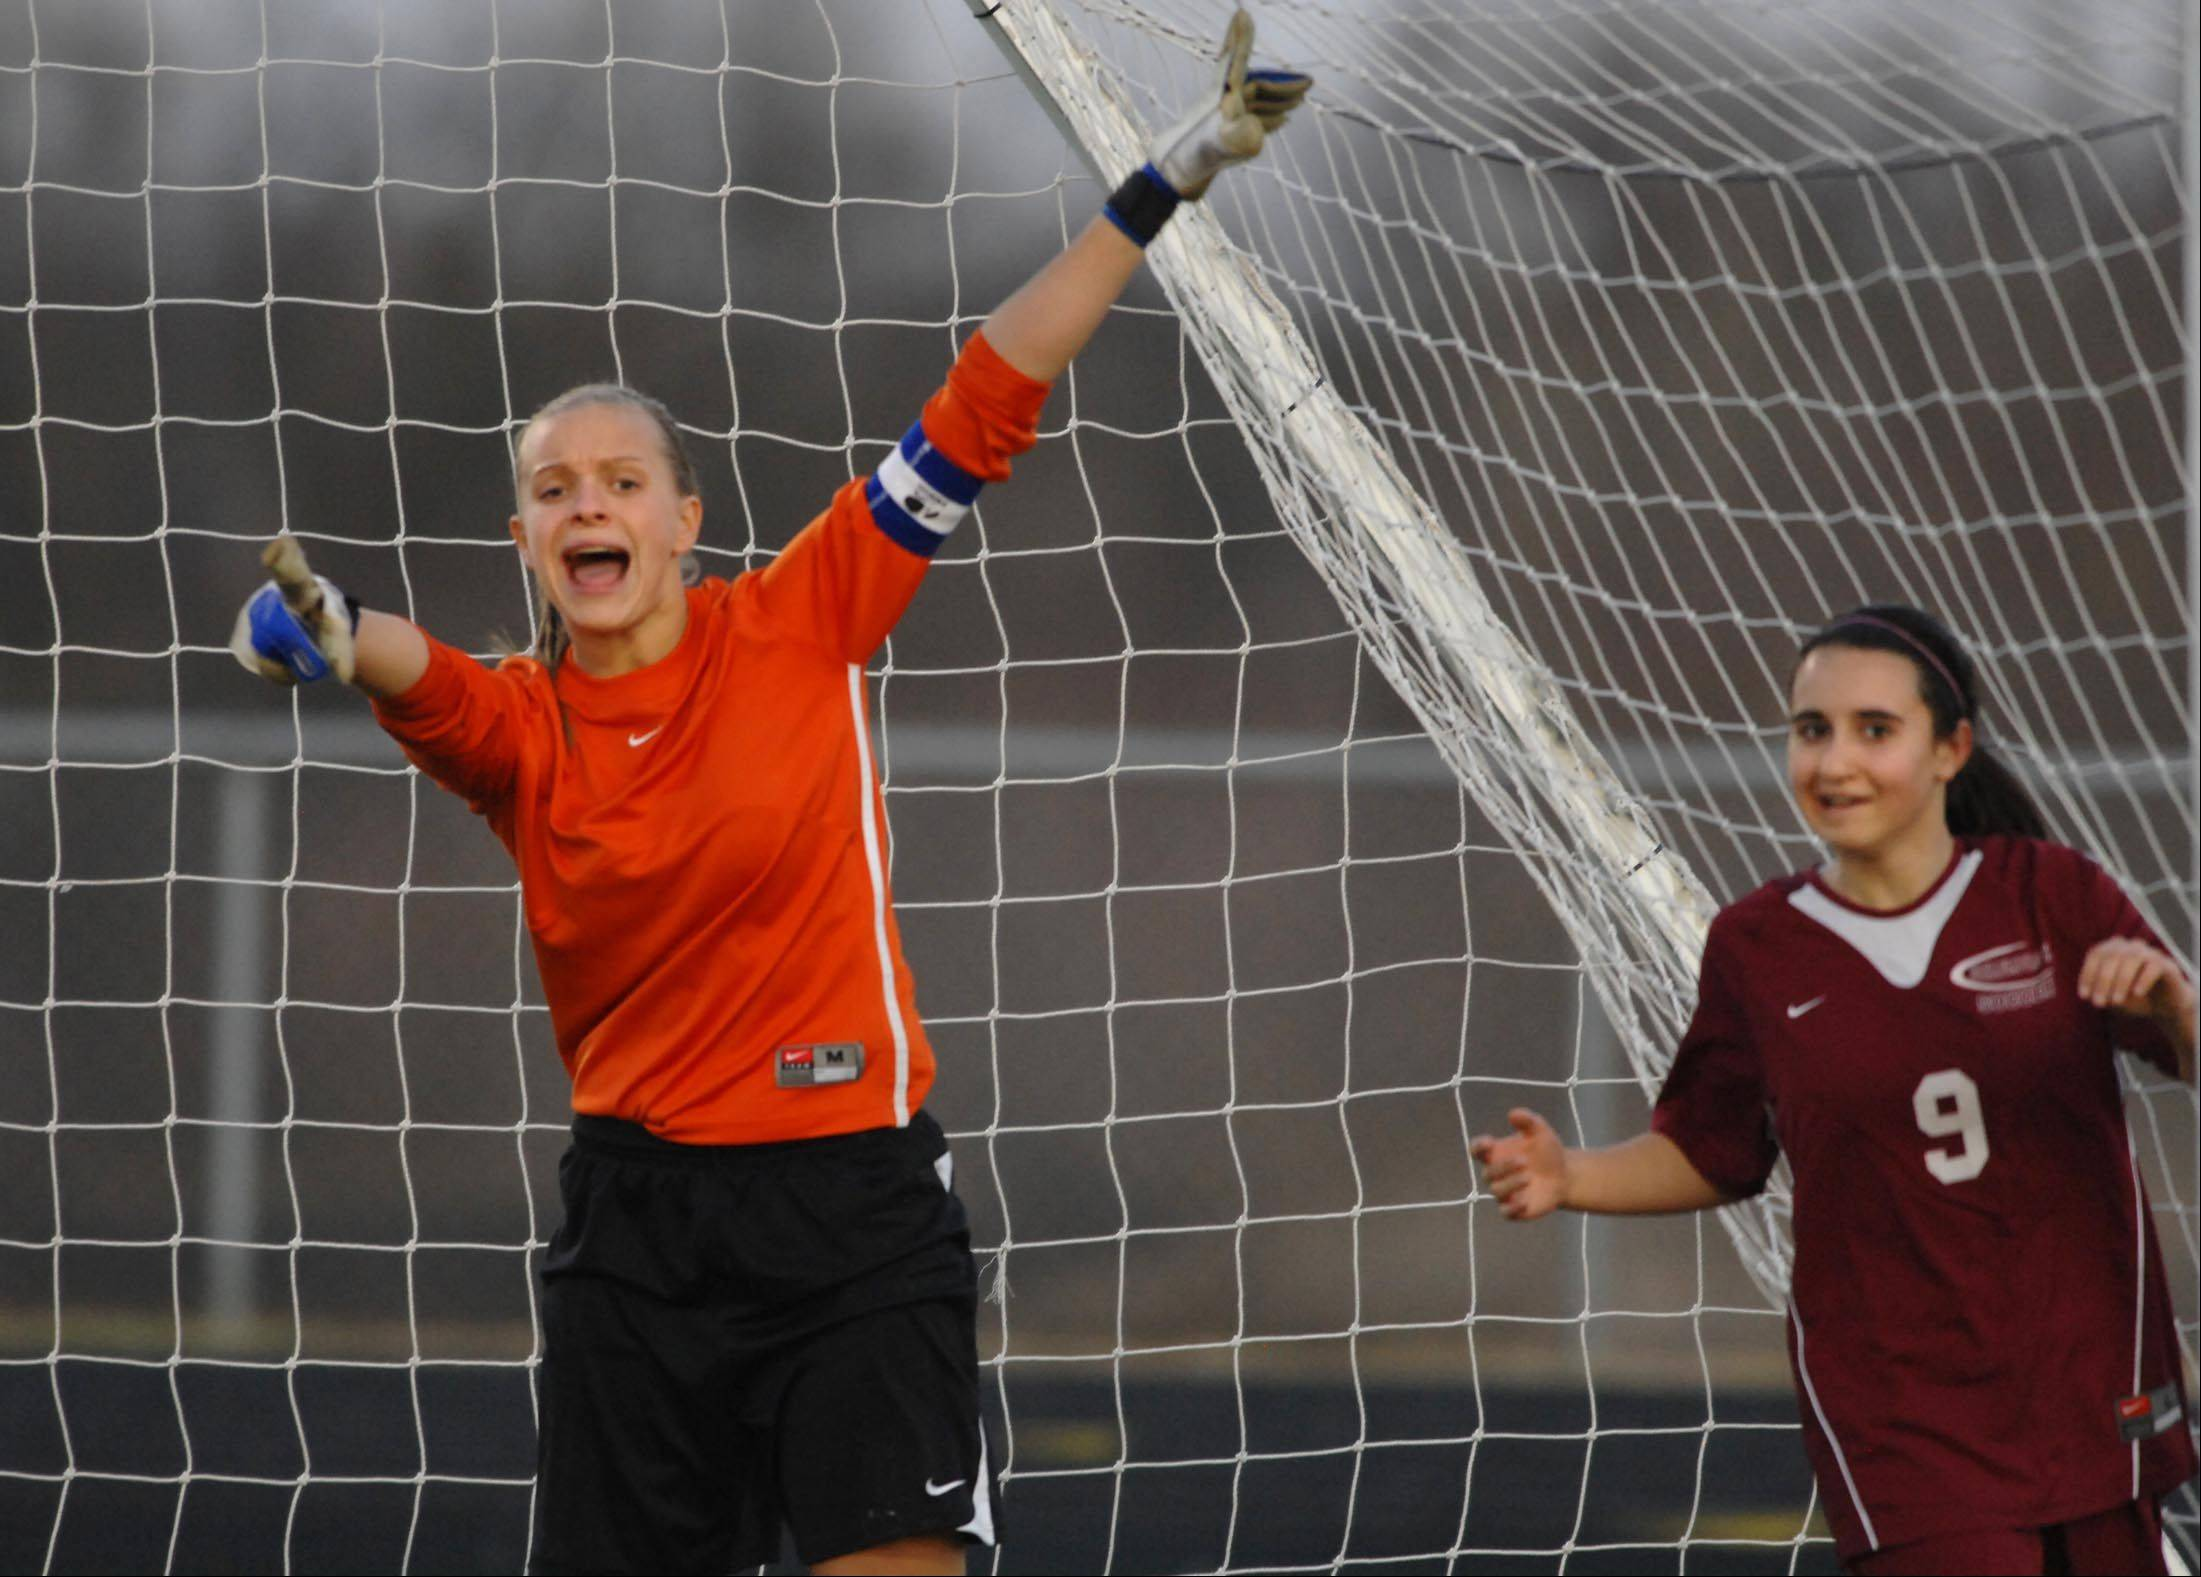 Bartlett goalkeeper Natalia Grodzki tries to get the attention of the referee after Schaumburg's Alexa Ben, right, scored a goal Monday in Streamwood.